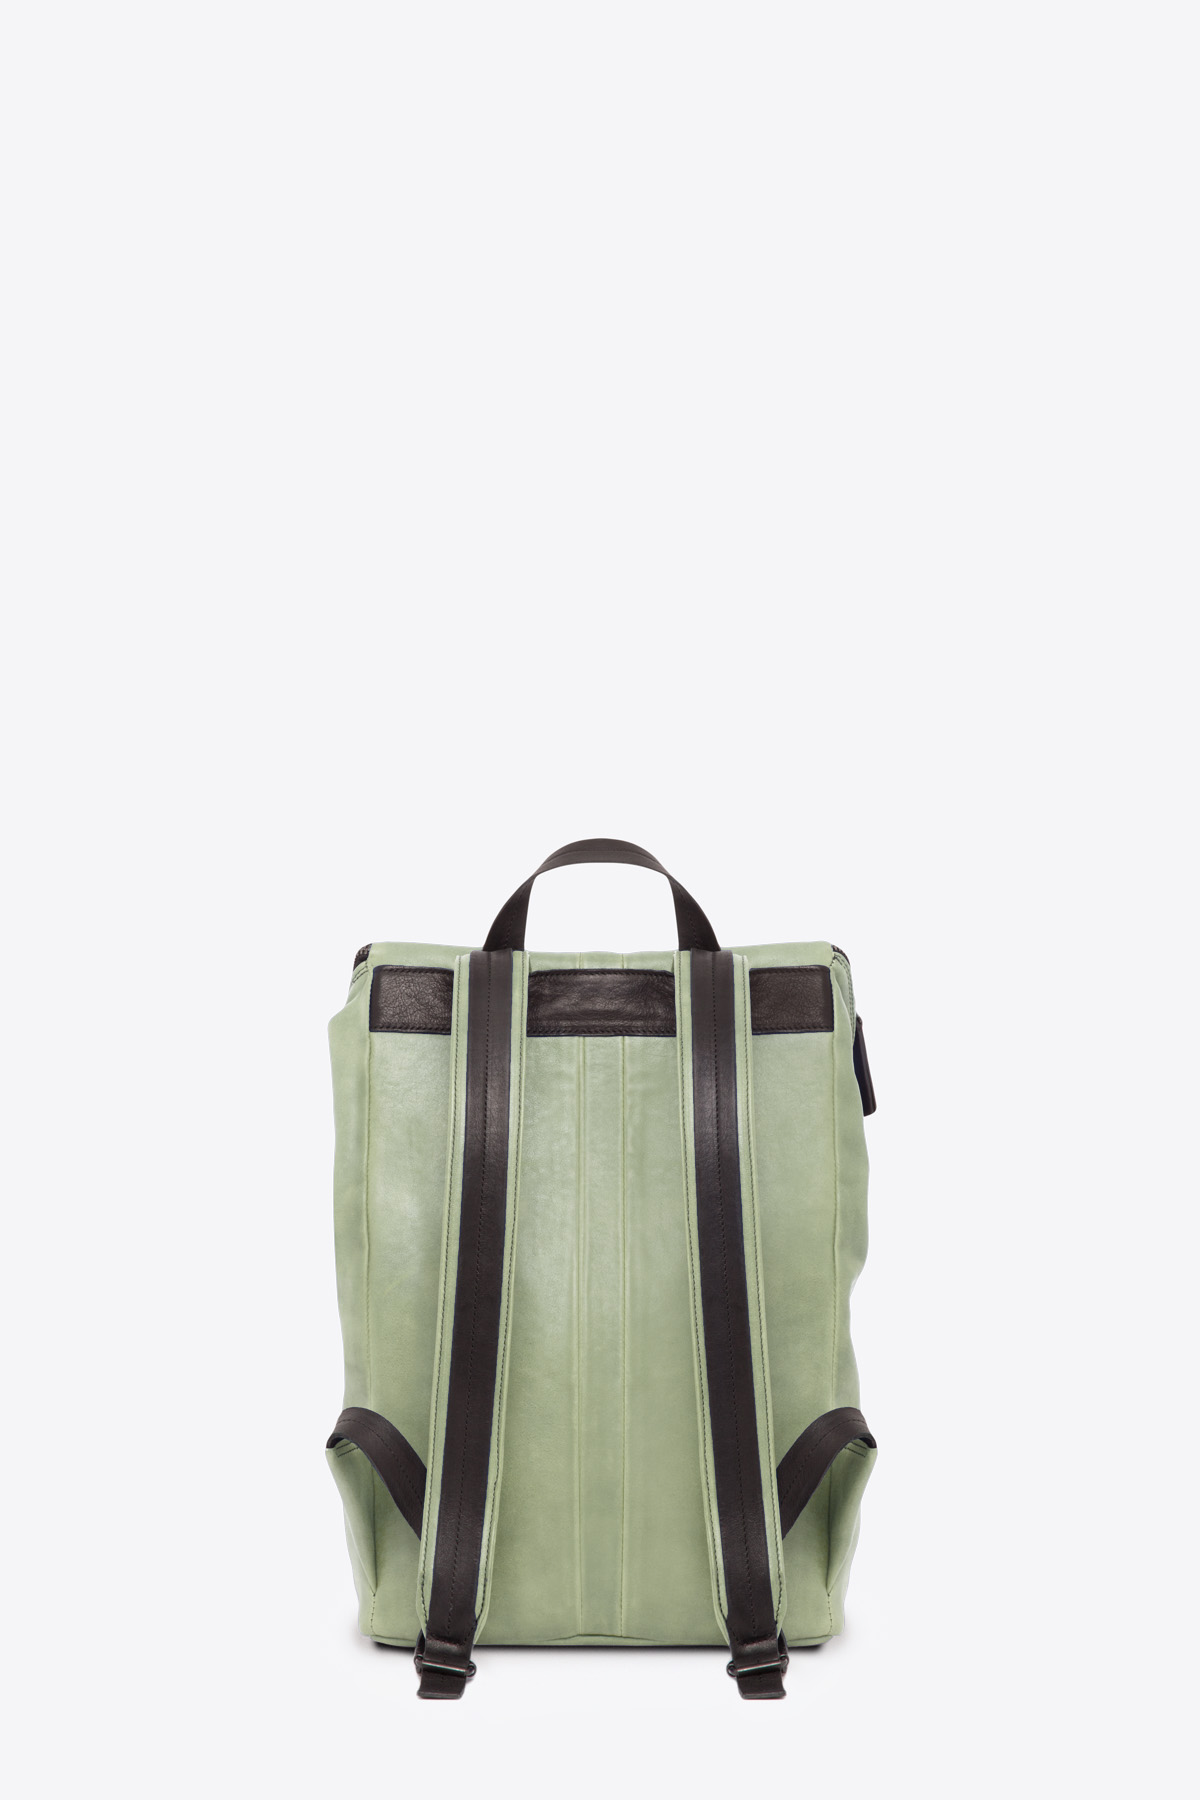 dclr011-backpack-a9-jadegreen-back